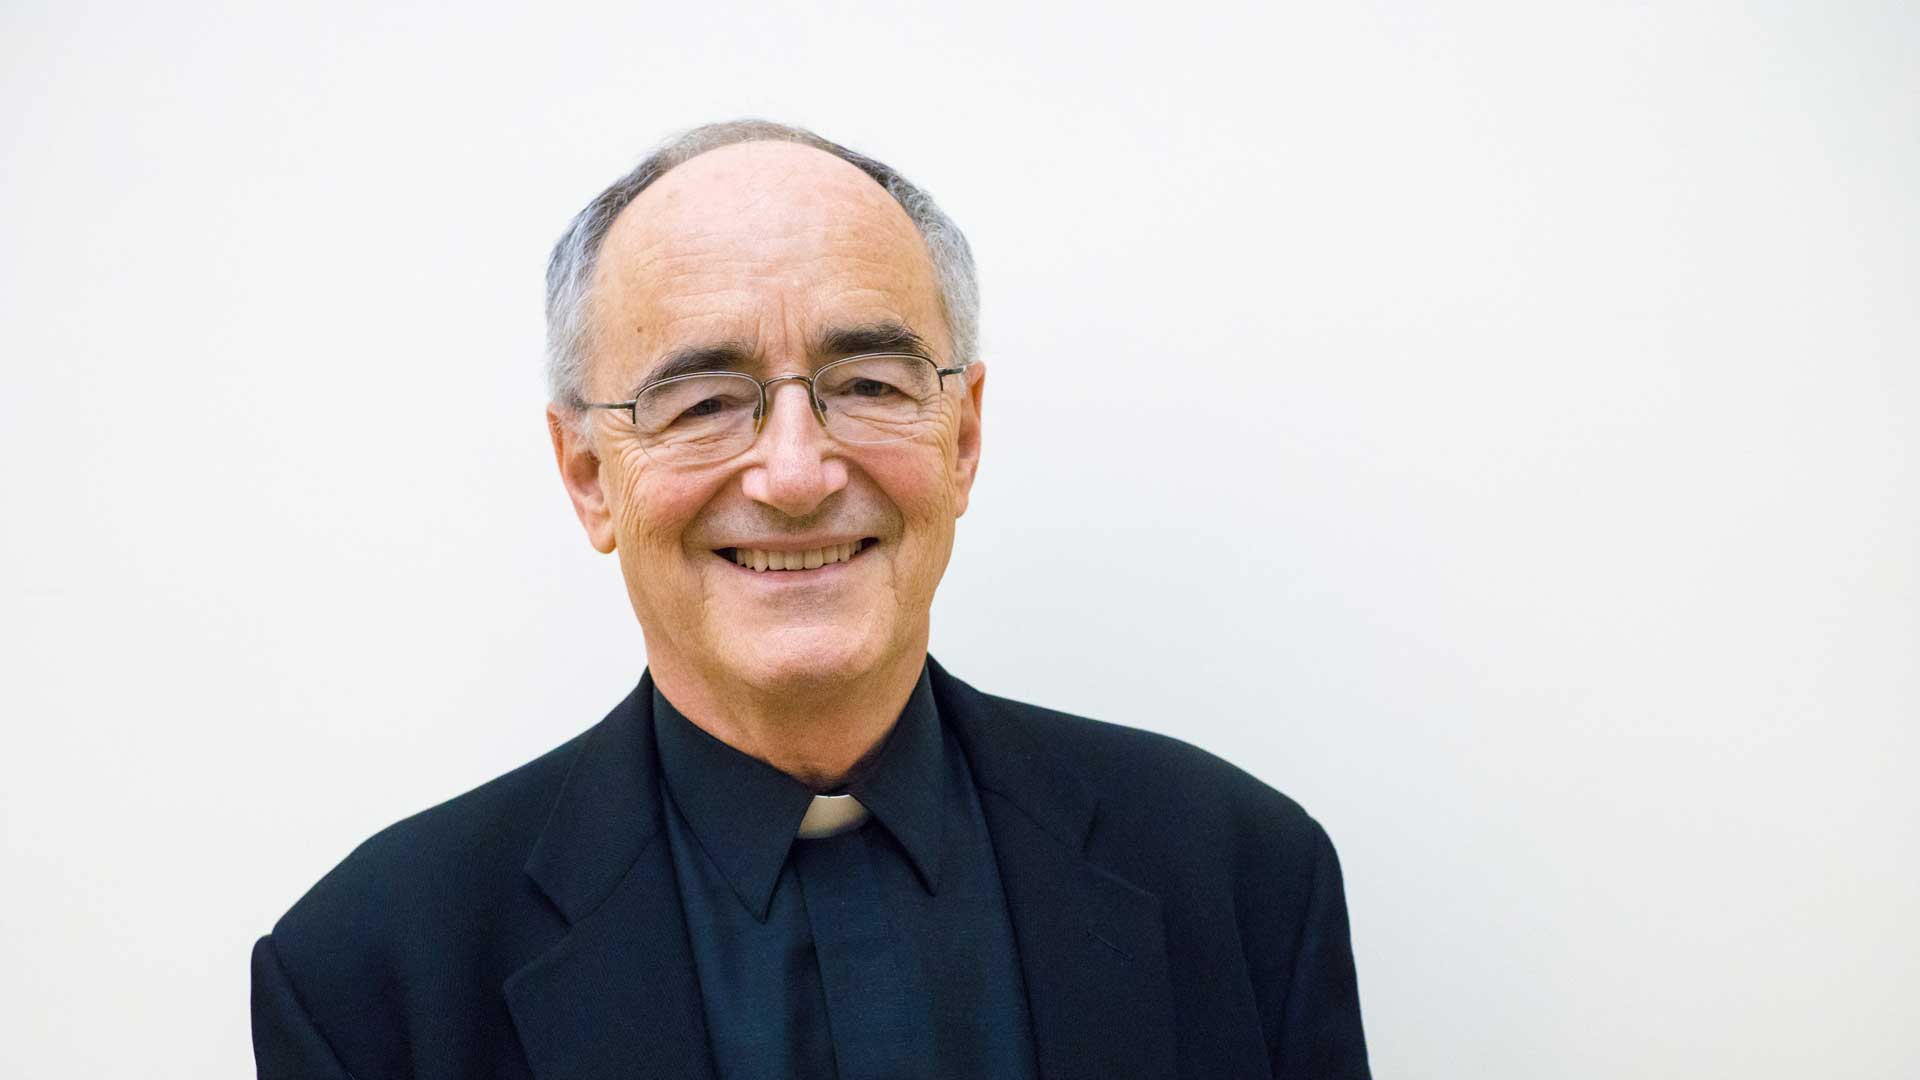 Migrants & Refugees Section - Fr. Michael Czerny, SJ